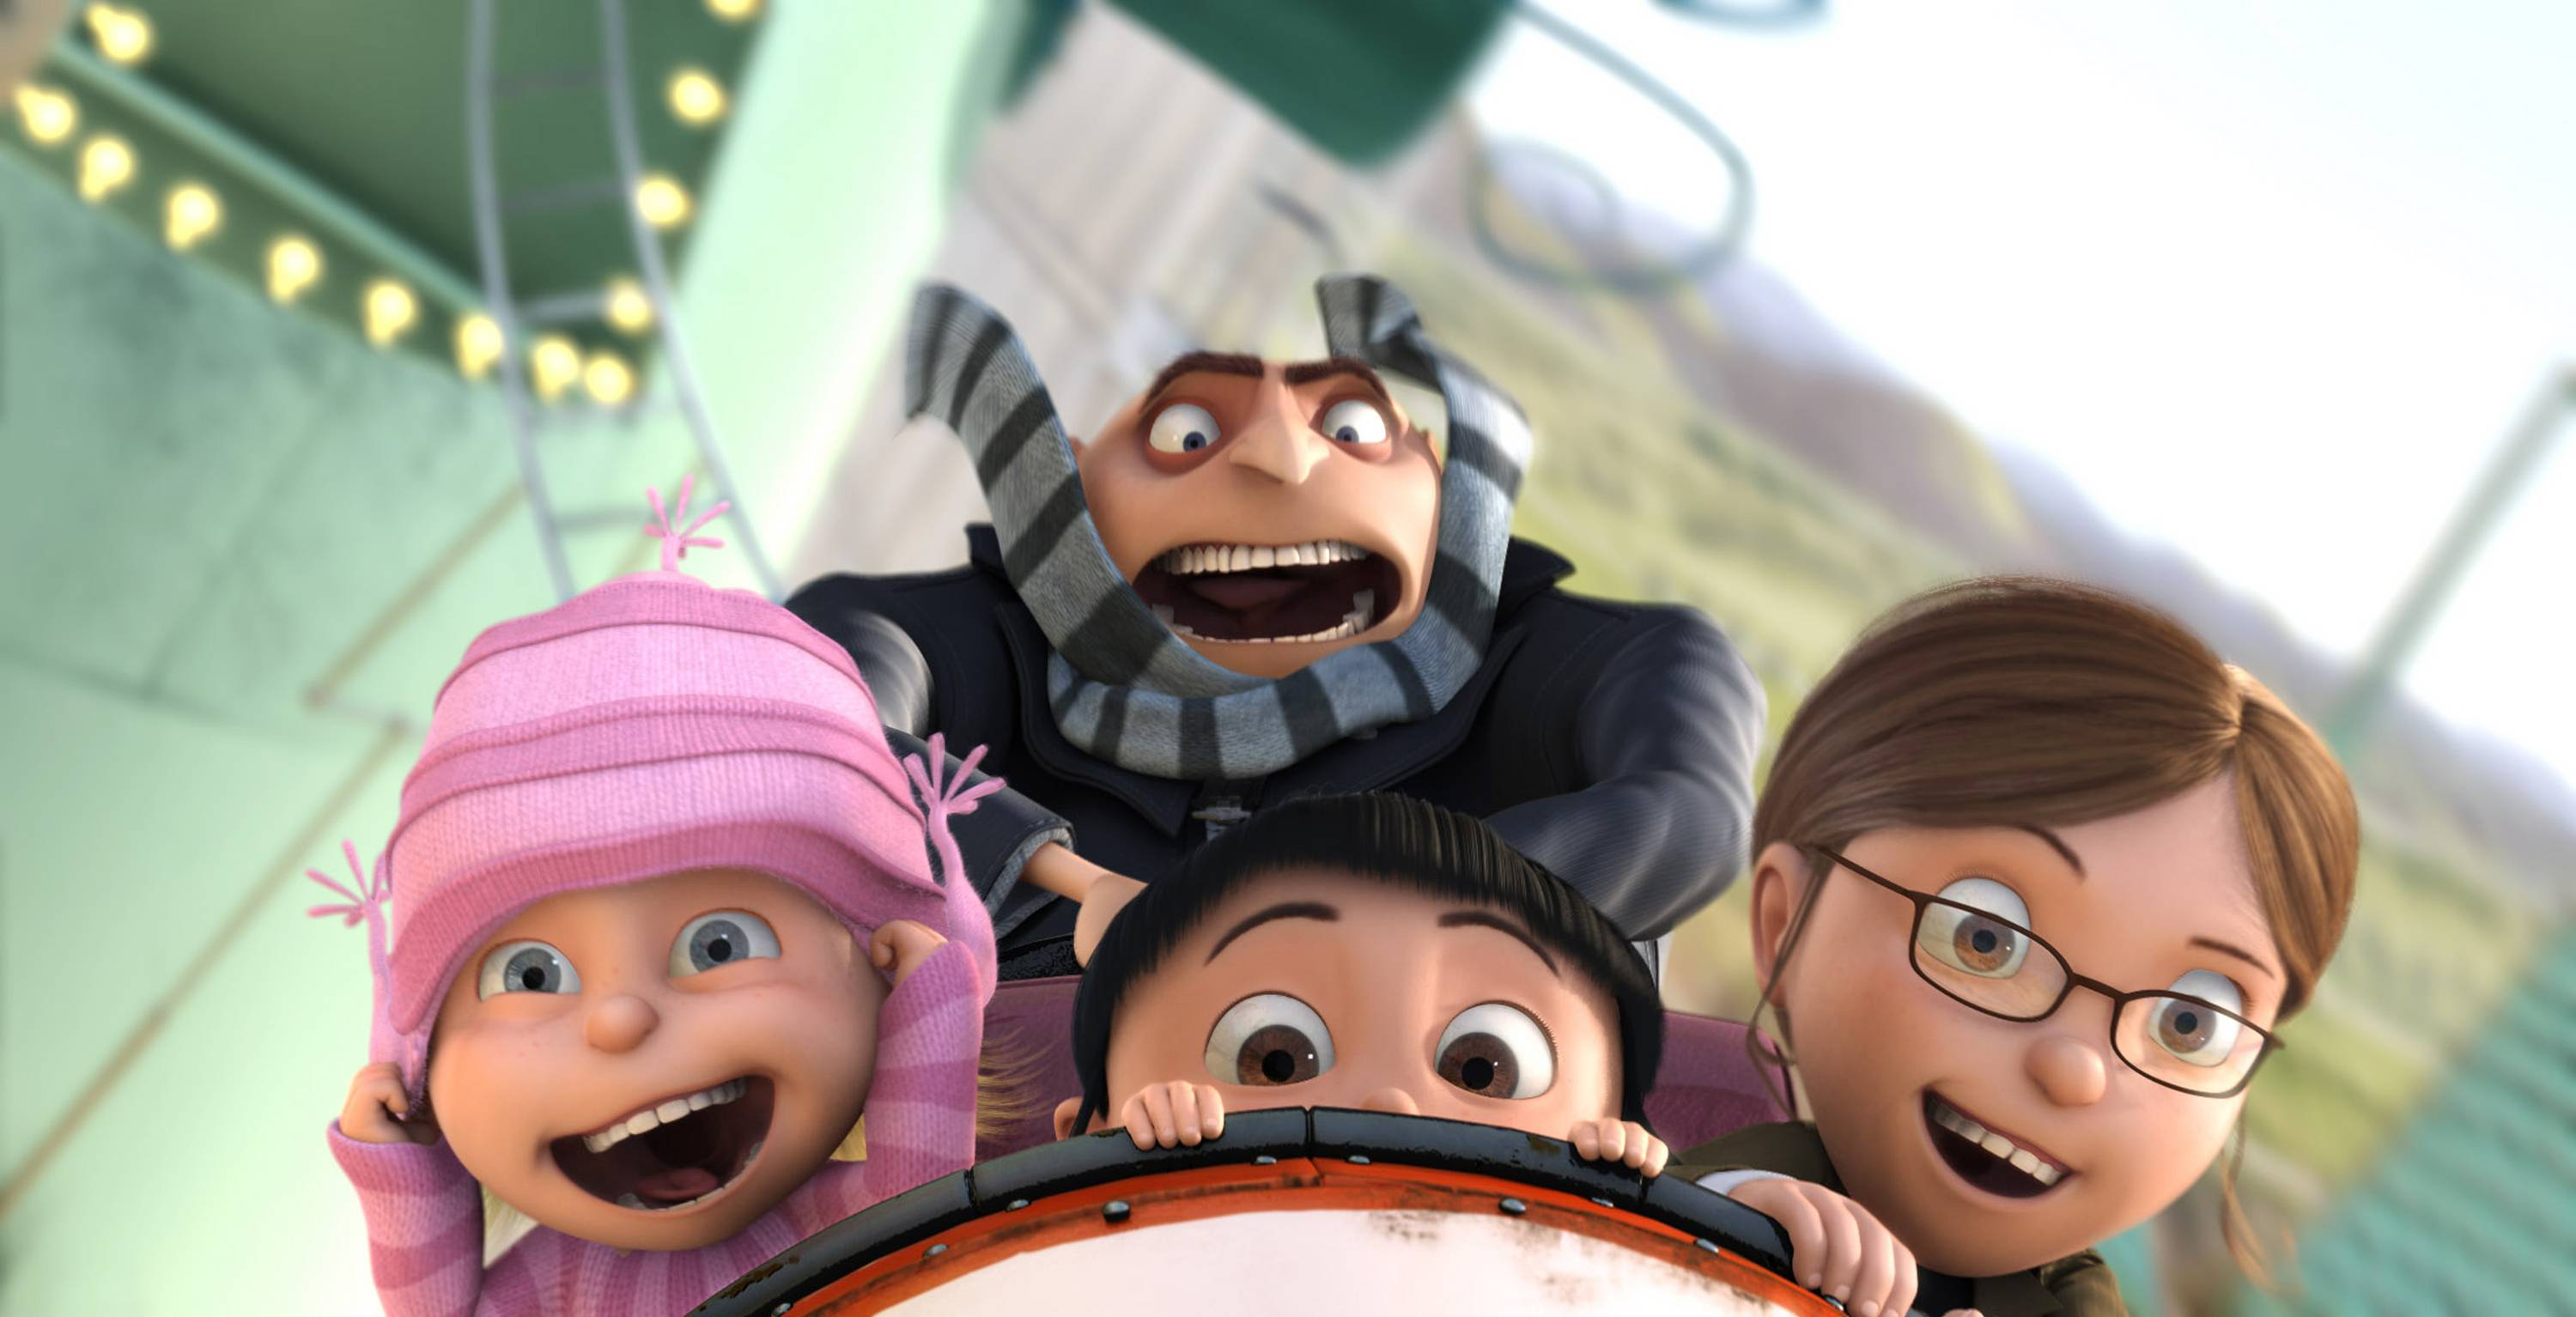 """Despicable Me"" wasn't such a bad guy after all, it seems, opening at the top of the box office with an estimated $60.1 million."